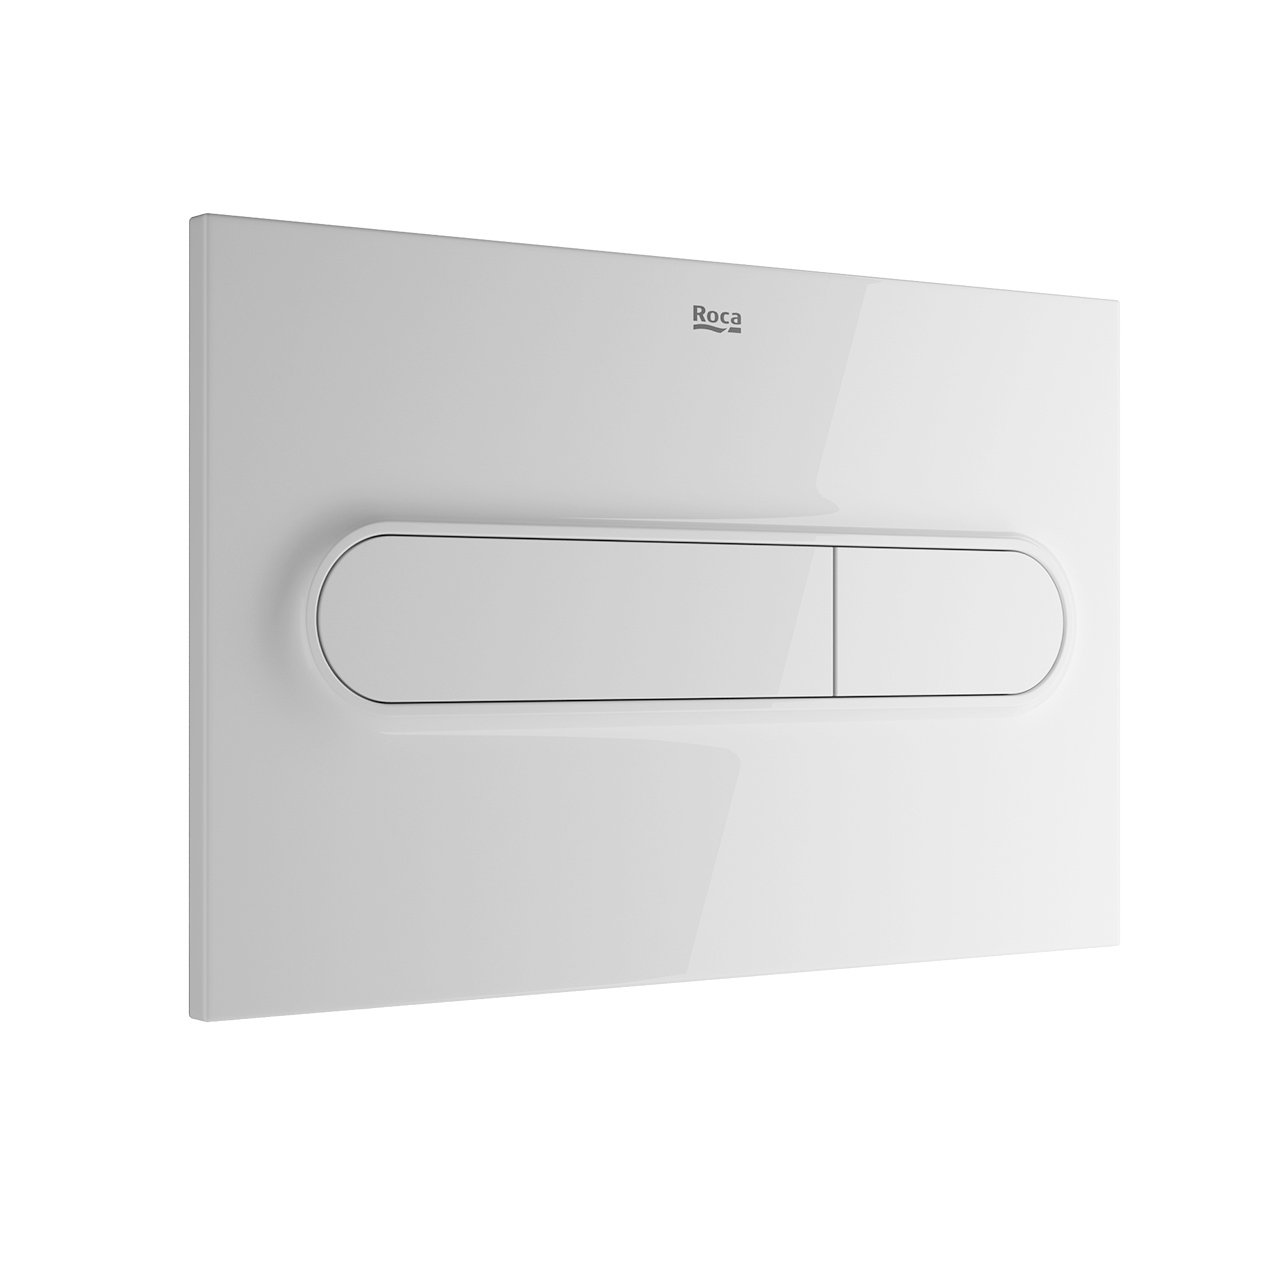 PL1 Dual Flush Plate by Roca